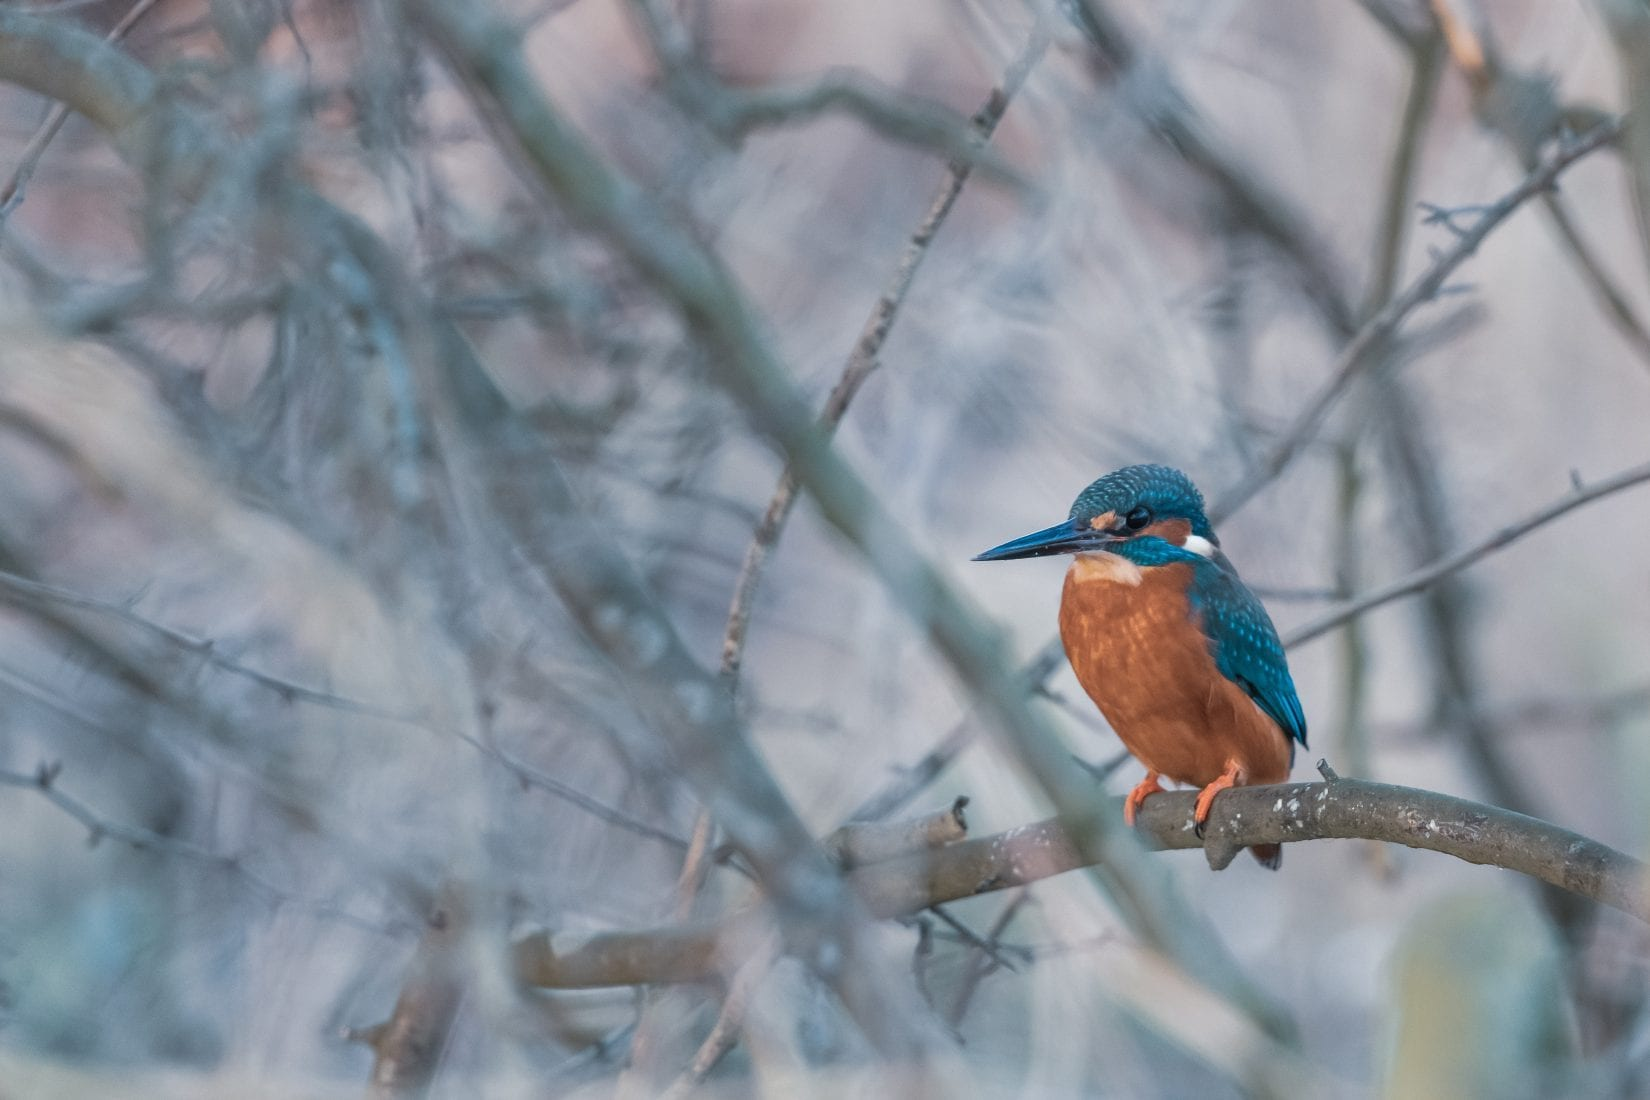 kingfisher-perched-on-a-branch